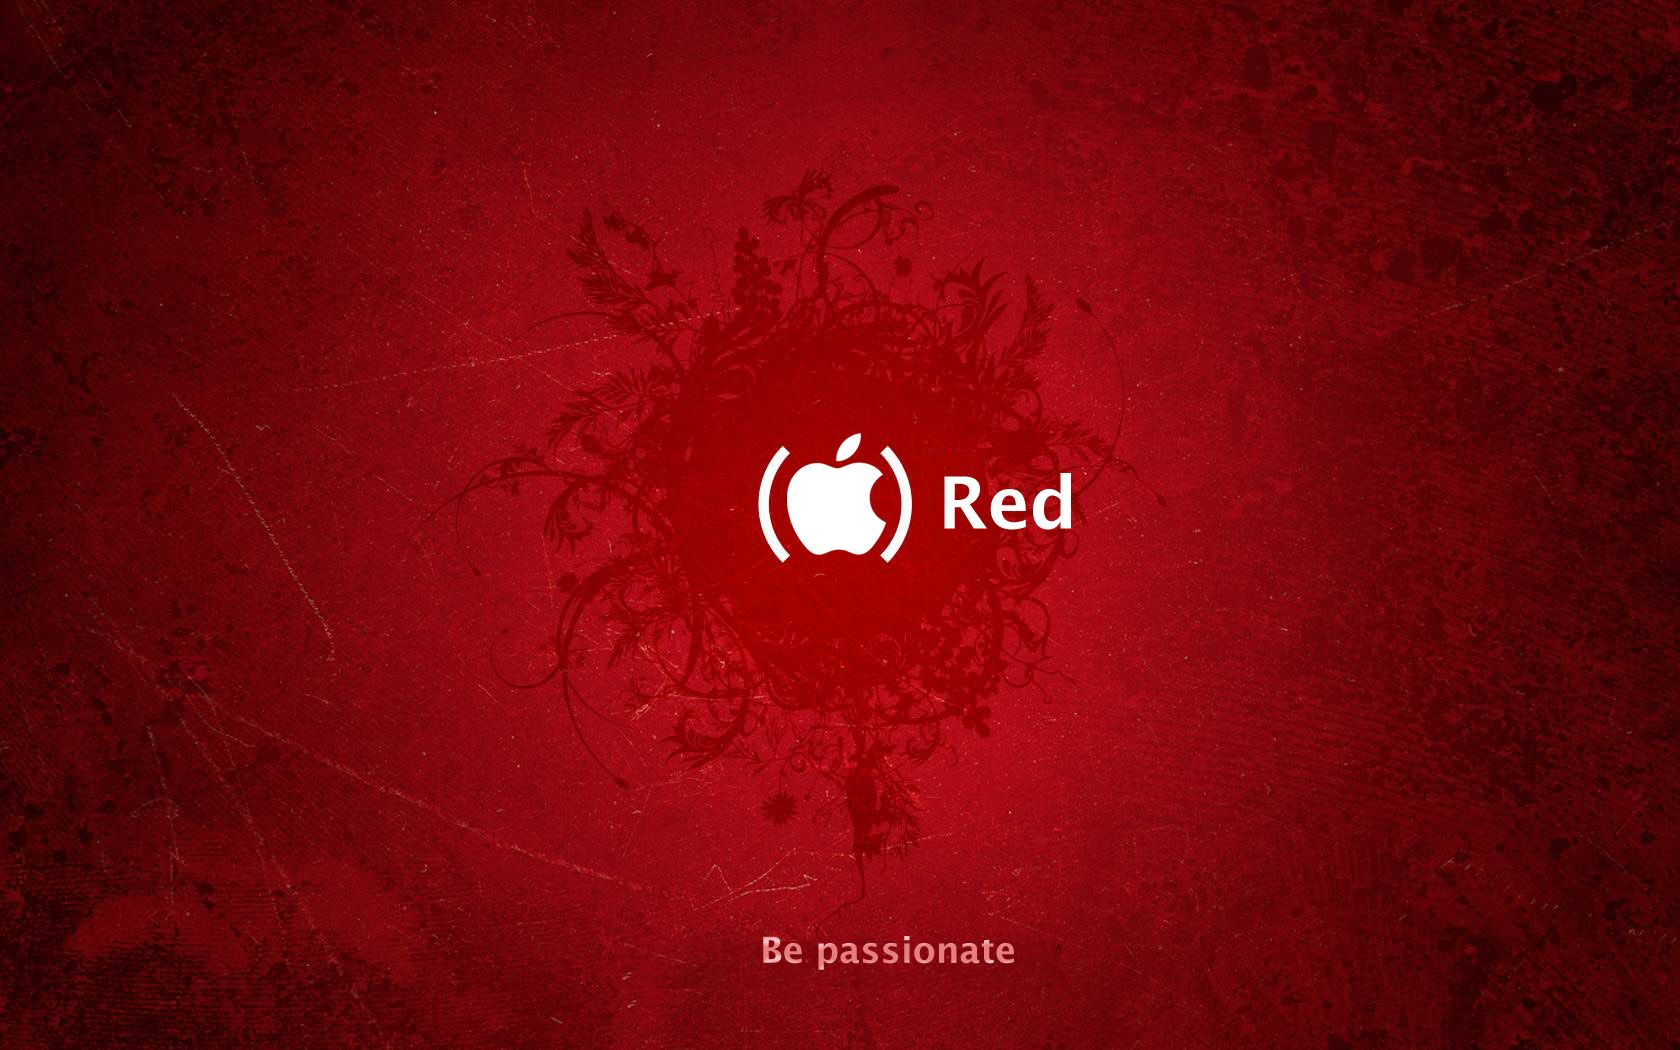 undefined Red Apple Wallpapers (38 Wallpapers) | Adorable Wallpapers